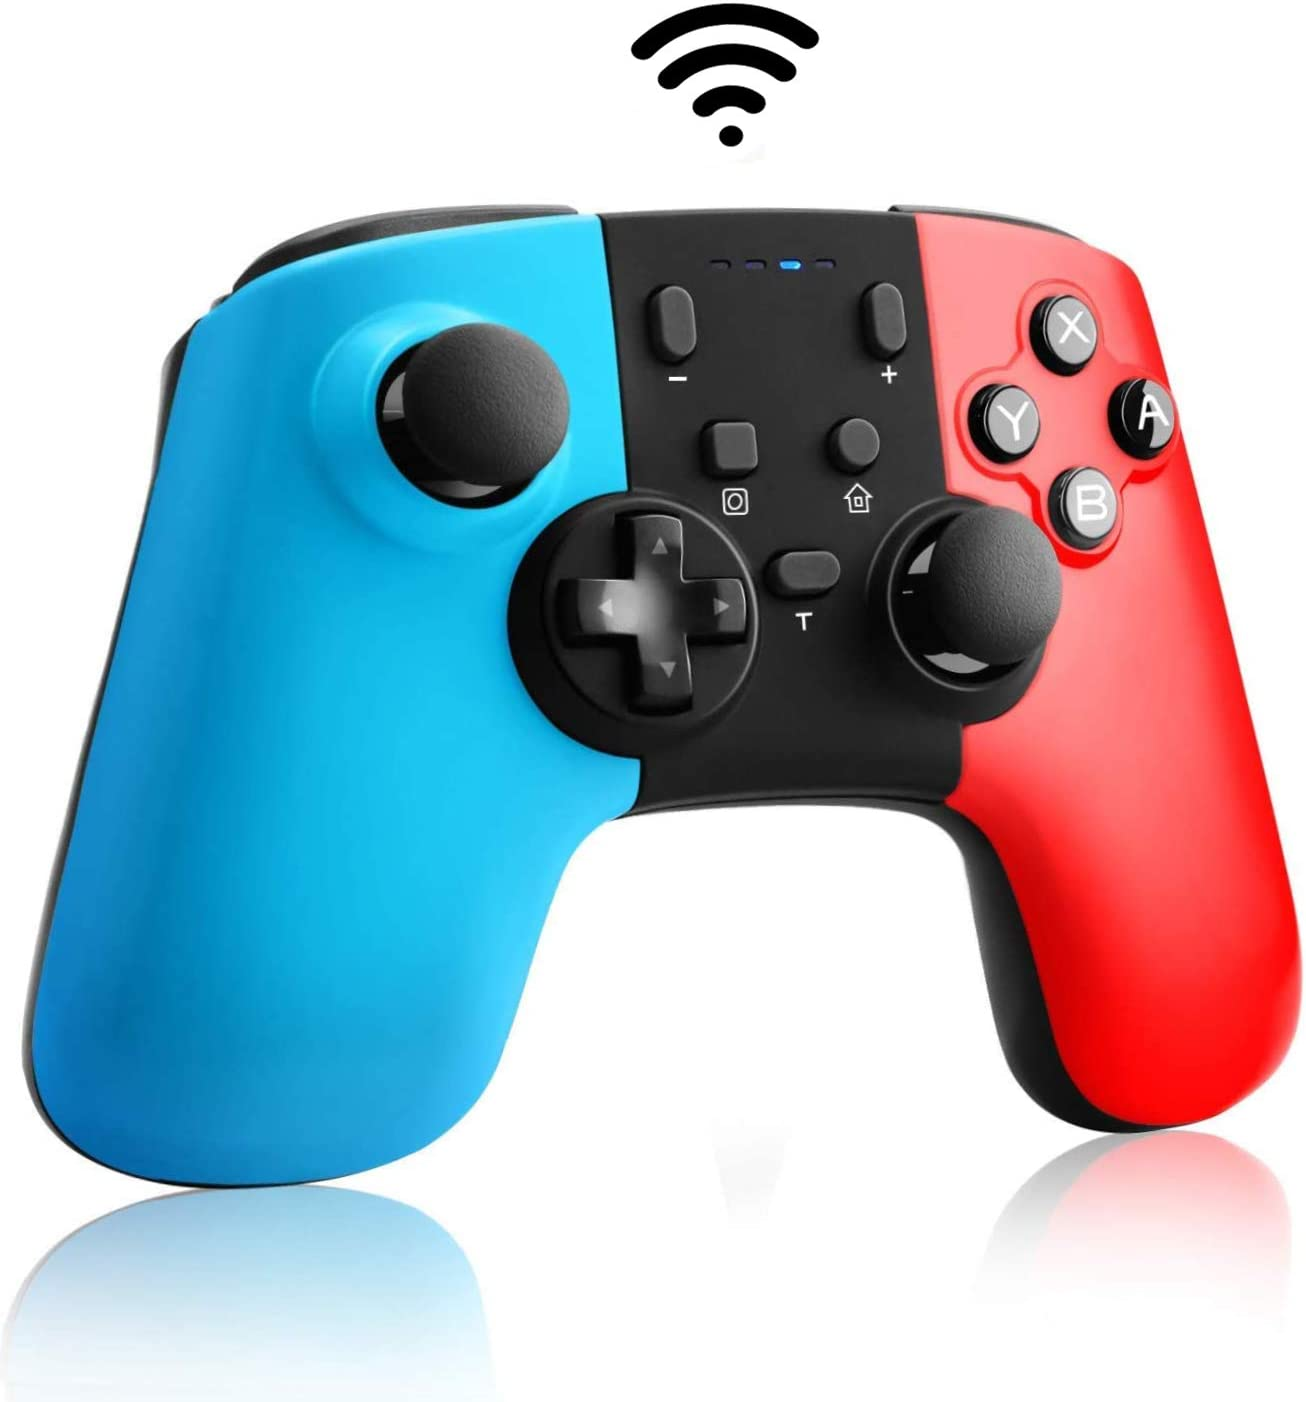 YHT Wireless Pro Controller for Nintendo Switch/Lite,Remote Switch Controller Gamepad for Nintendo Switch Console with 6-Axis Gyro Motion Control,Turbo Function and 3 Level Vibrations(Red&Blue)